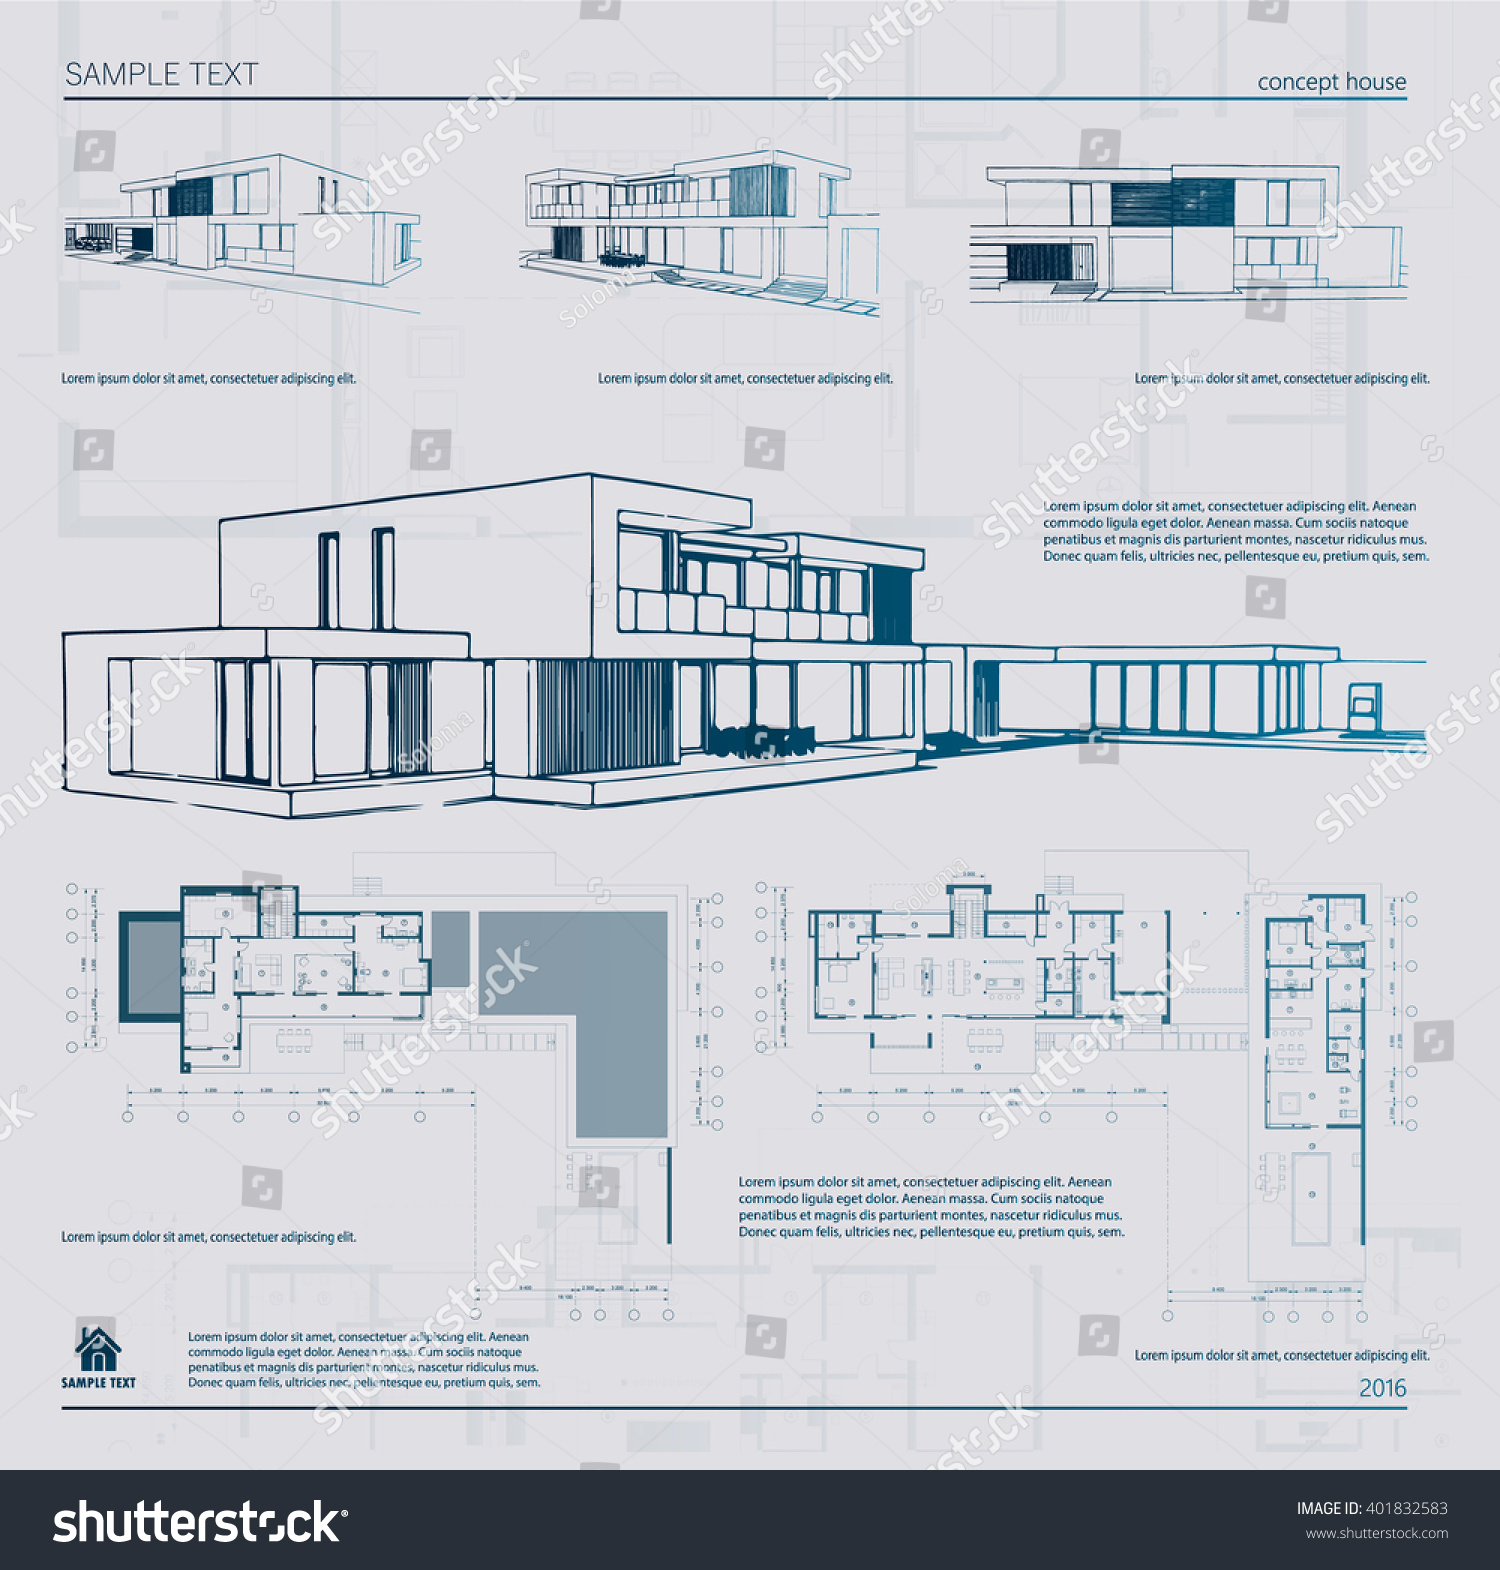 Wireframe Blueprint Drawing 3d Building Vector Stock Of D Architectural Template Background